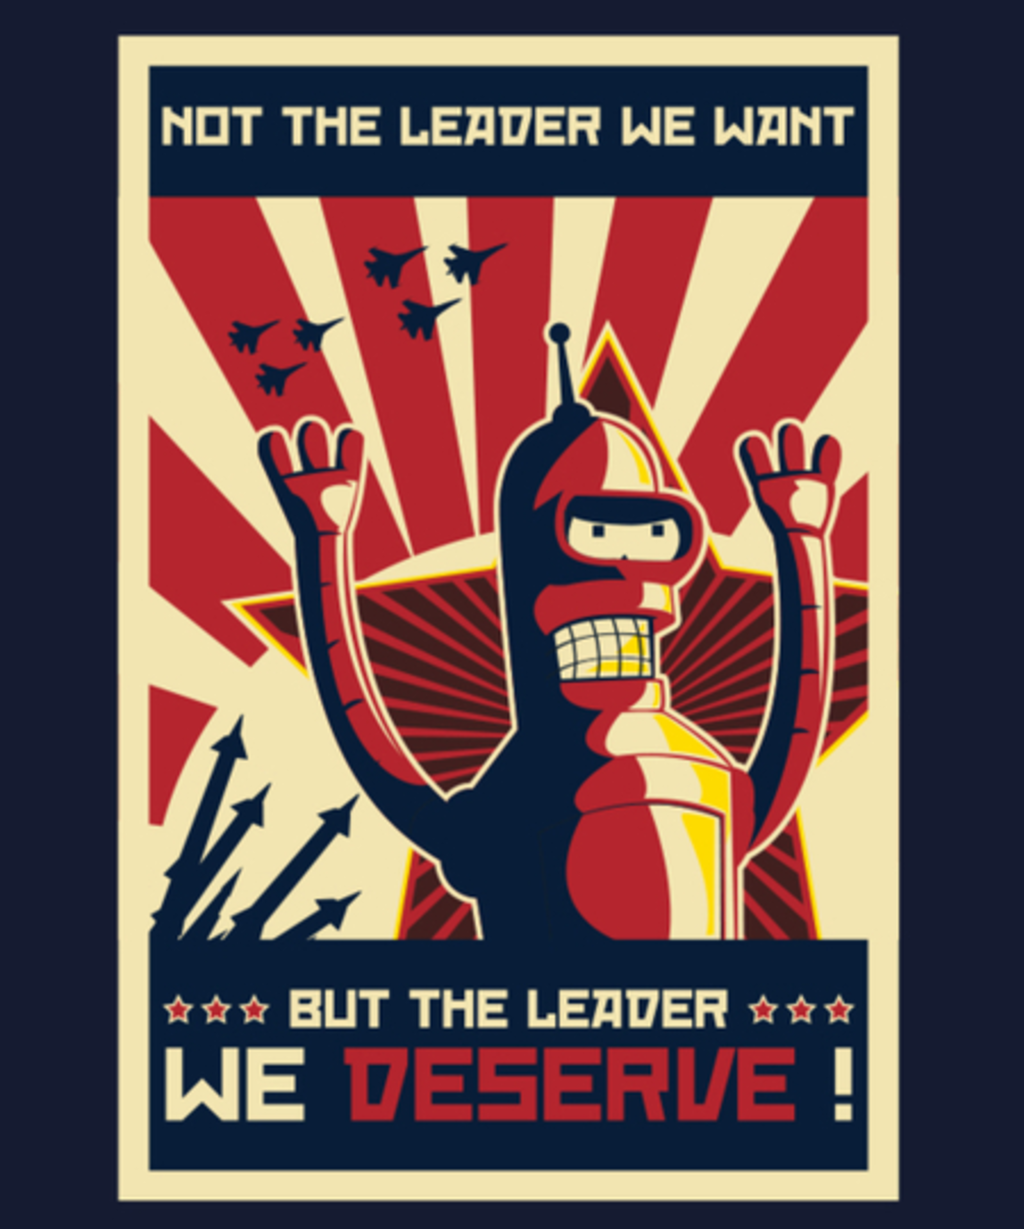 Qwertee: The Leader We Deserve